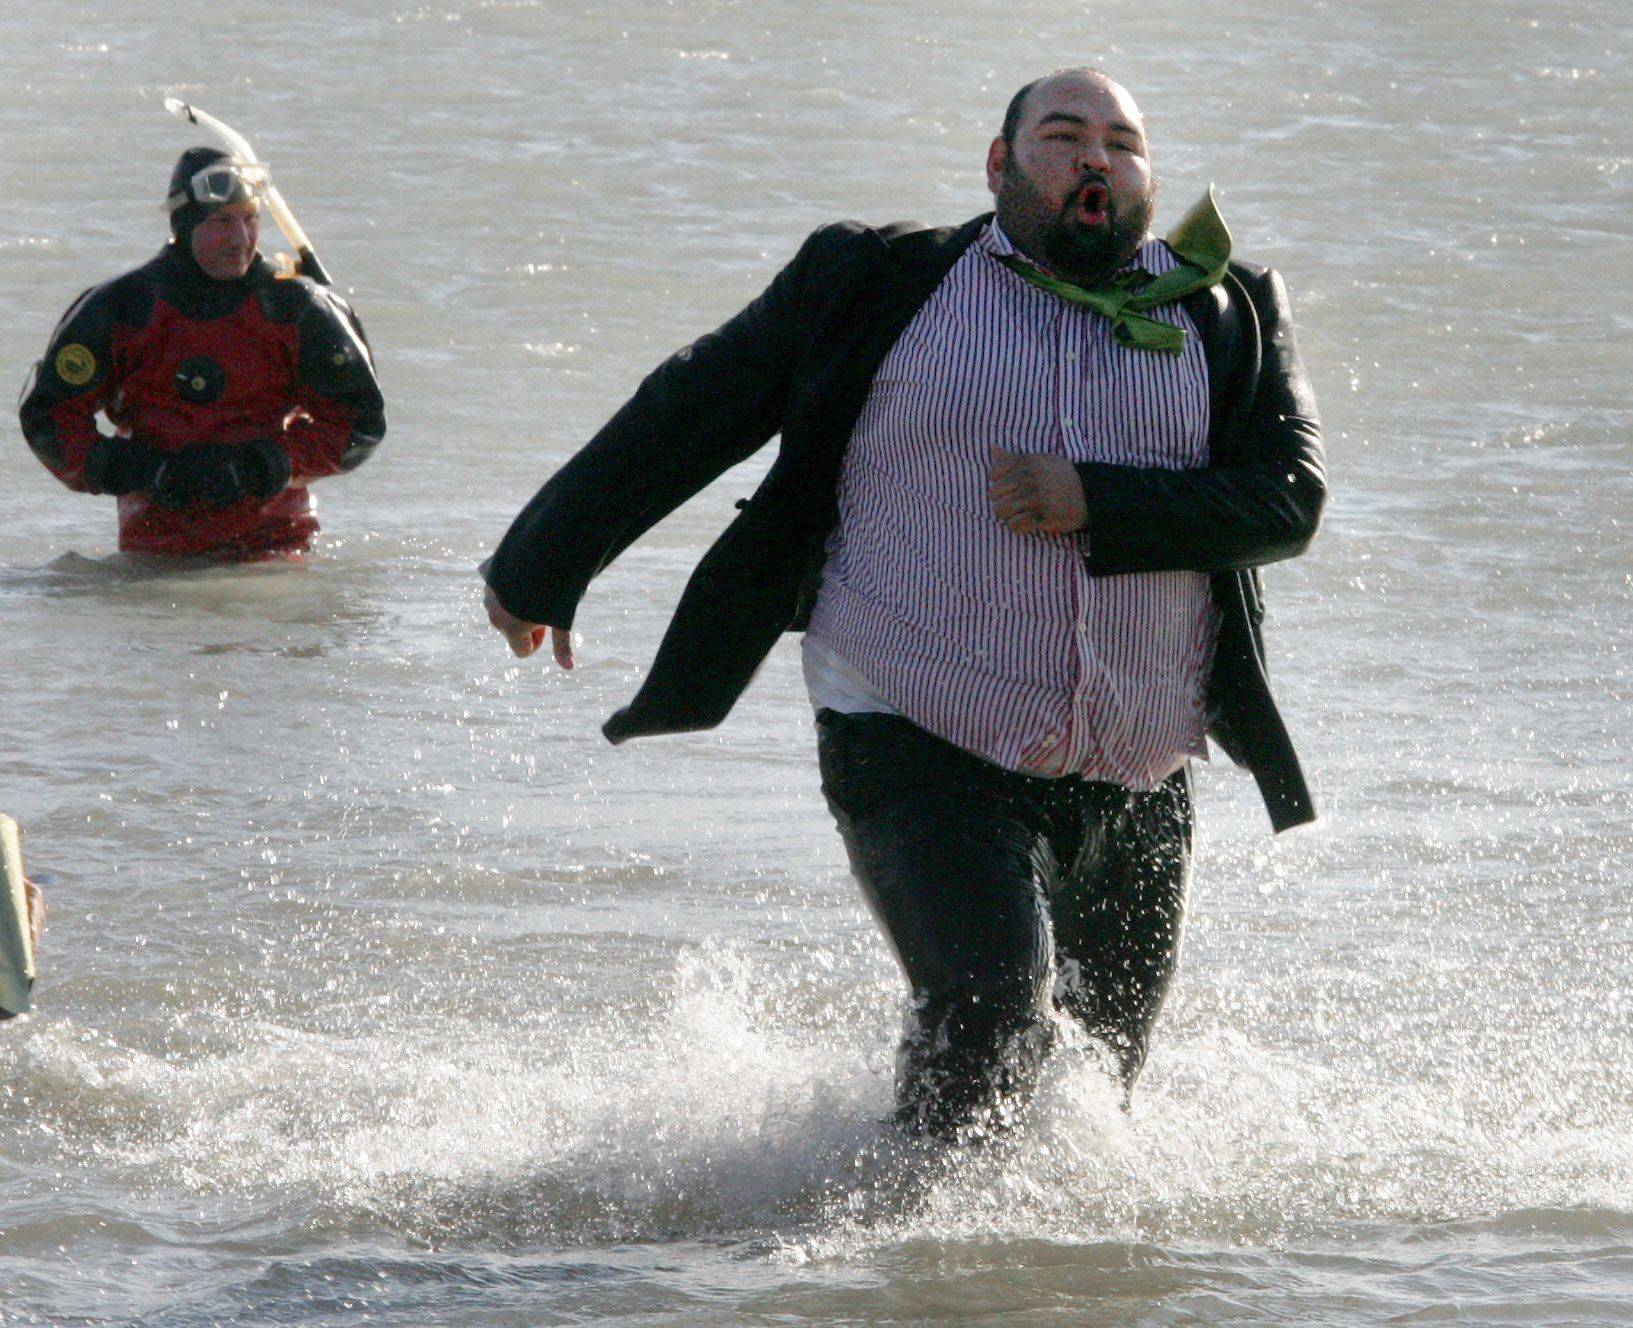 Alex Mancilla of Elgin wears a suit as he runs out of the water after a frigid morning dip during the 13th Annual Polar Bear Plunge Sunday in Waukegan.